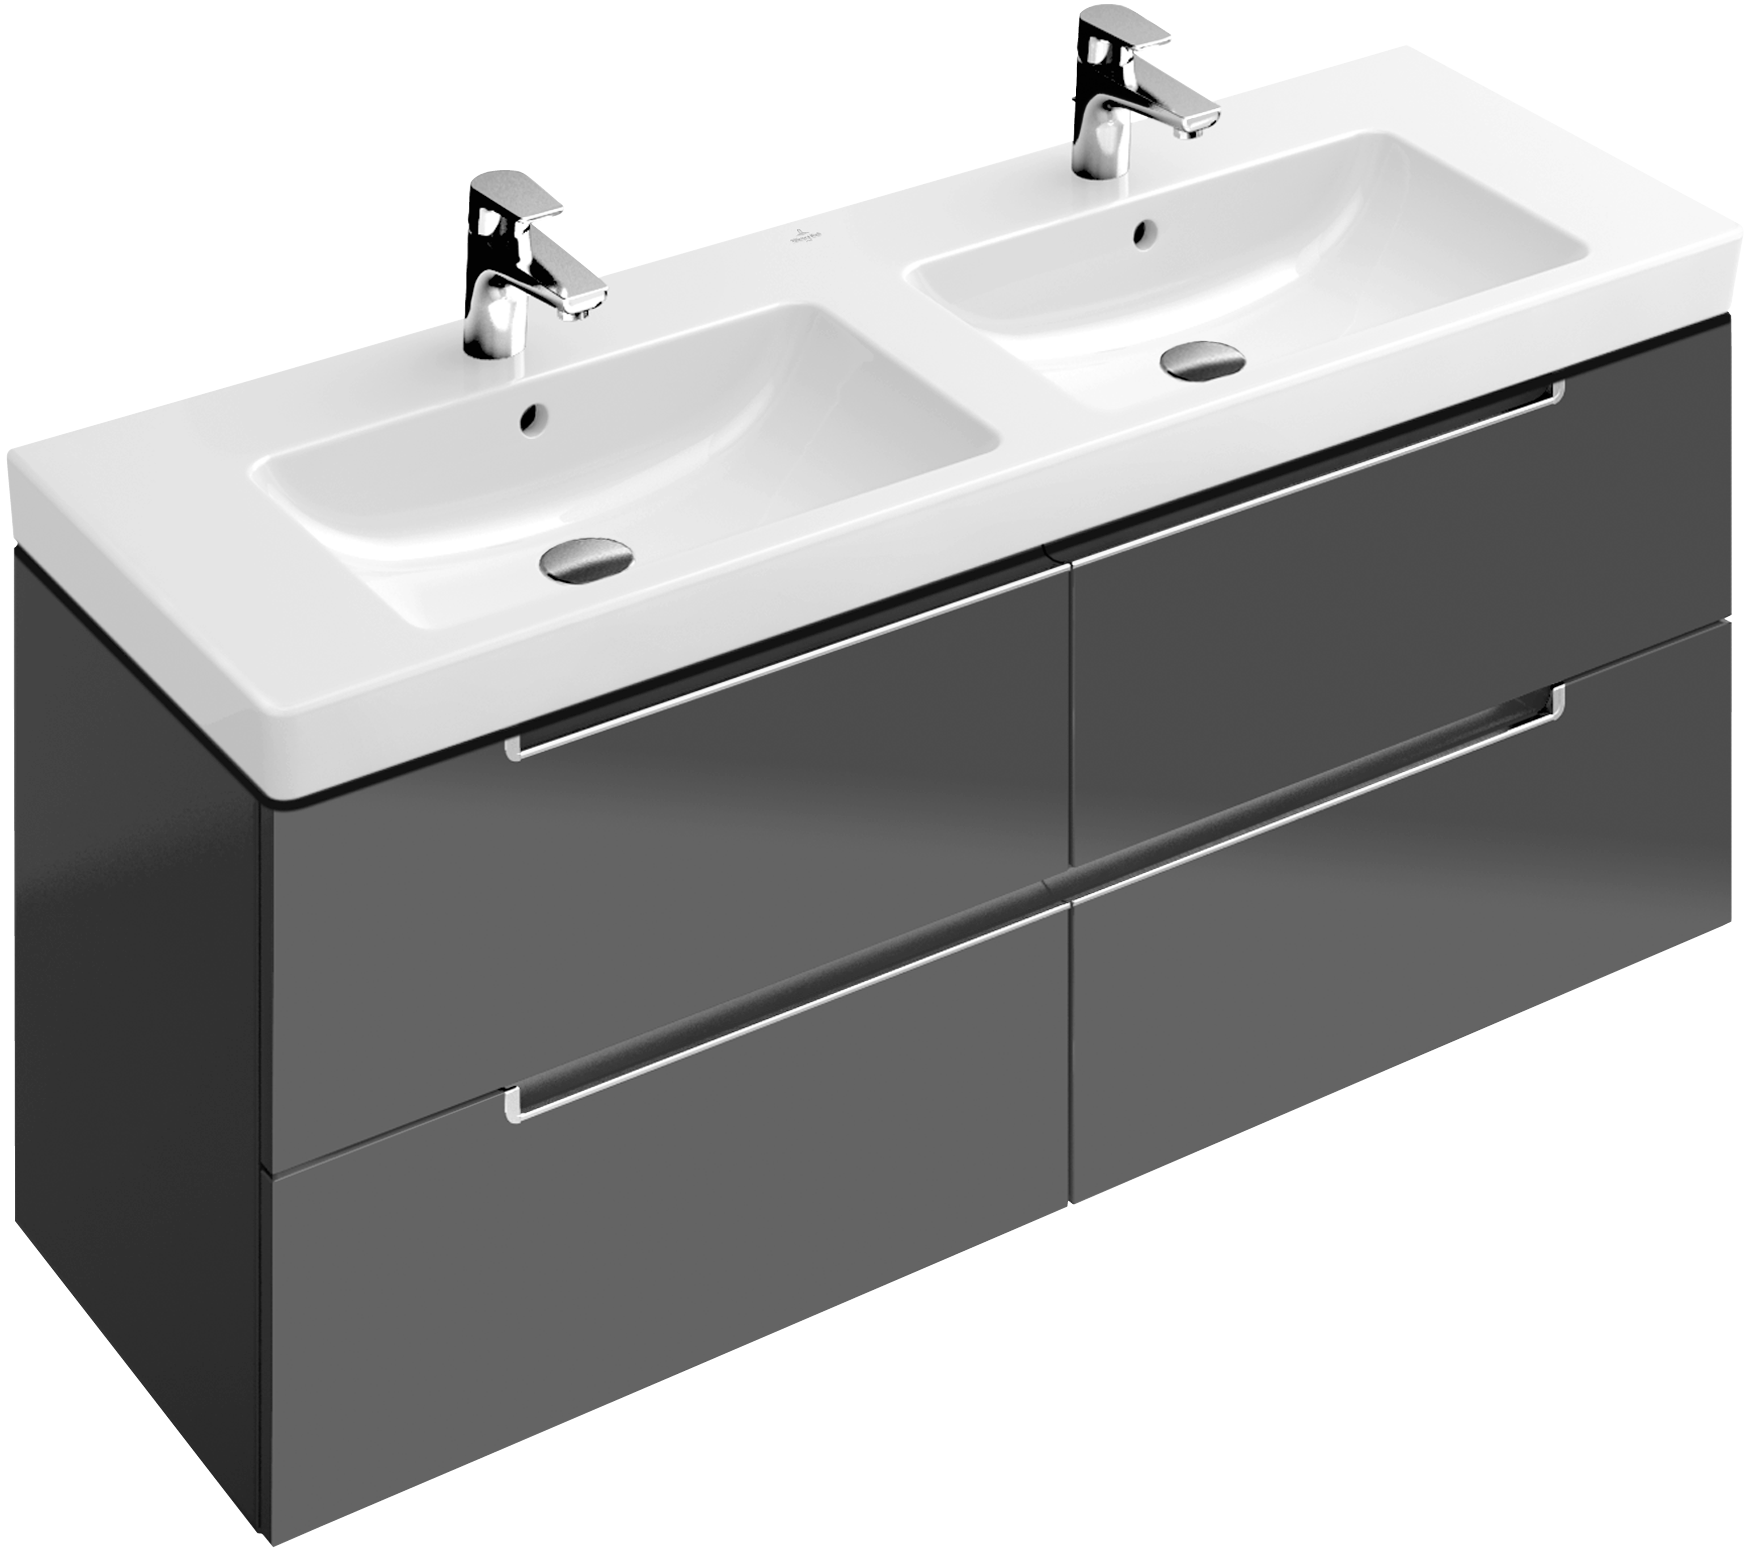 Subway 2 0 meuble sous lavabo a69910 villeroy boch for Meuble sous lavabo fly